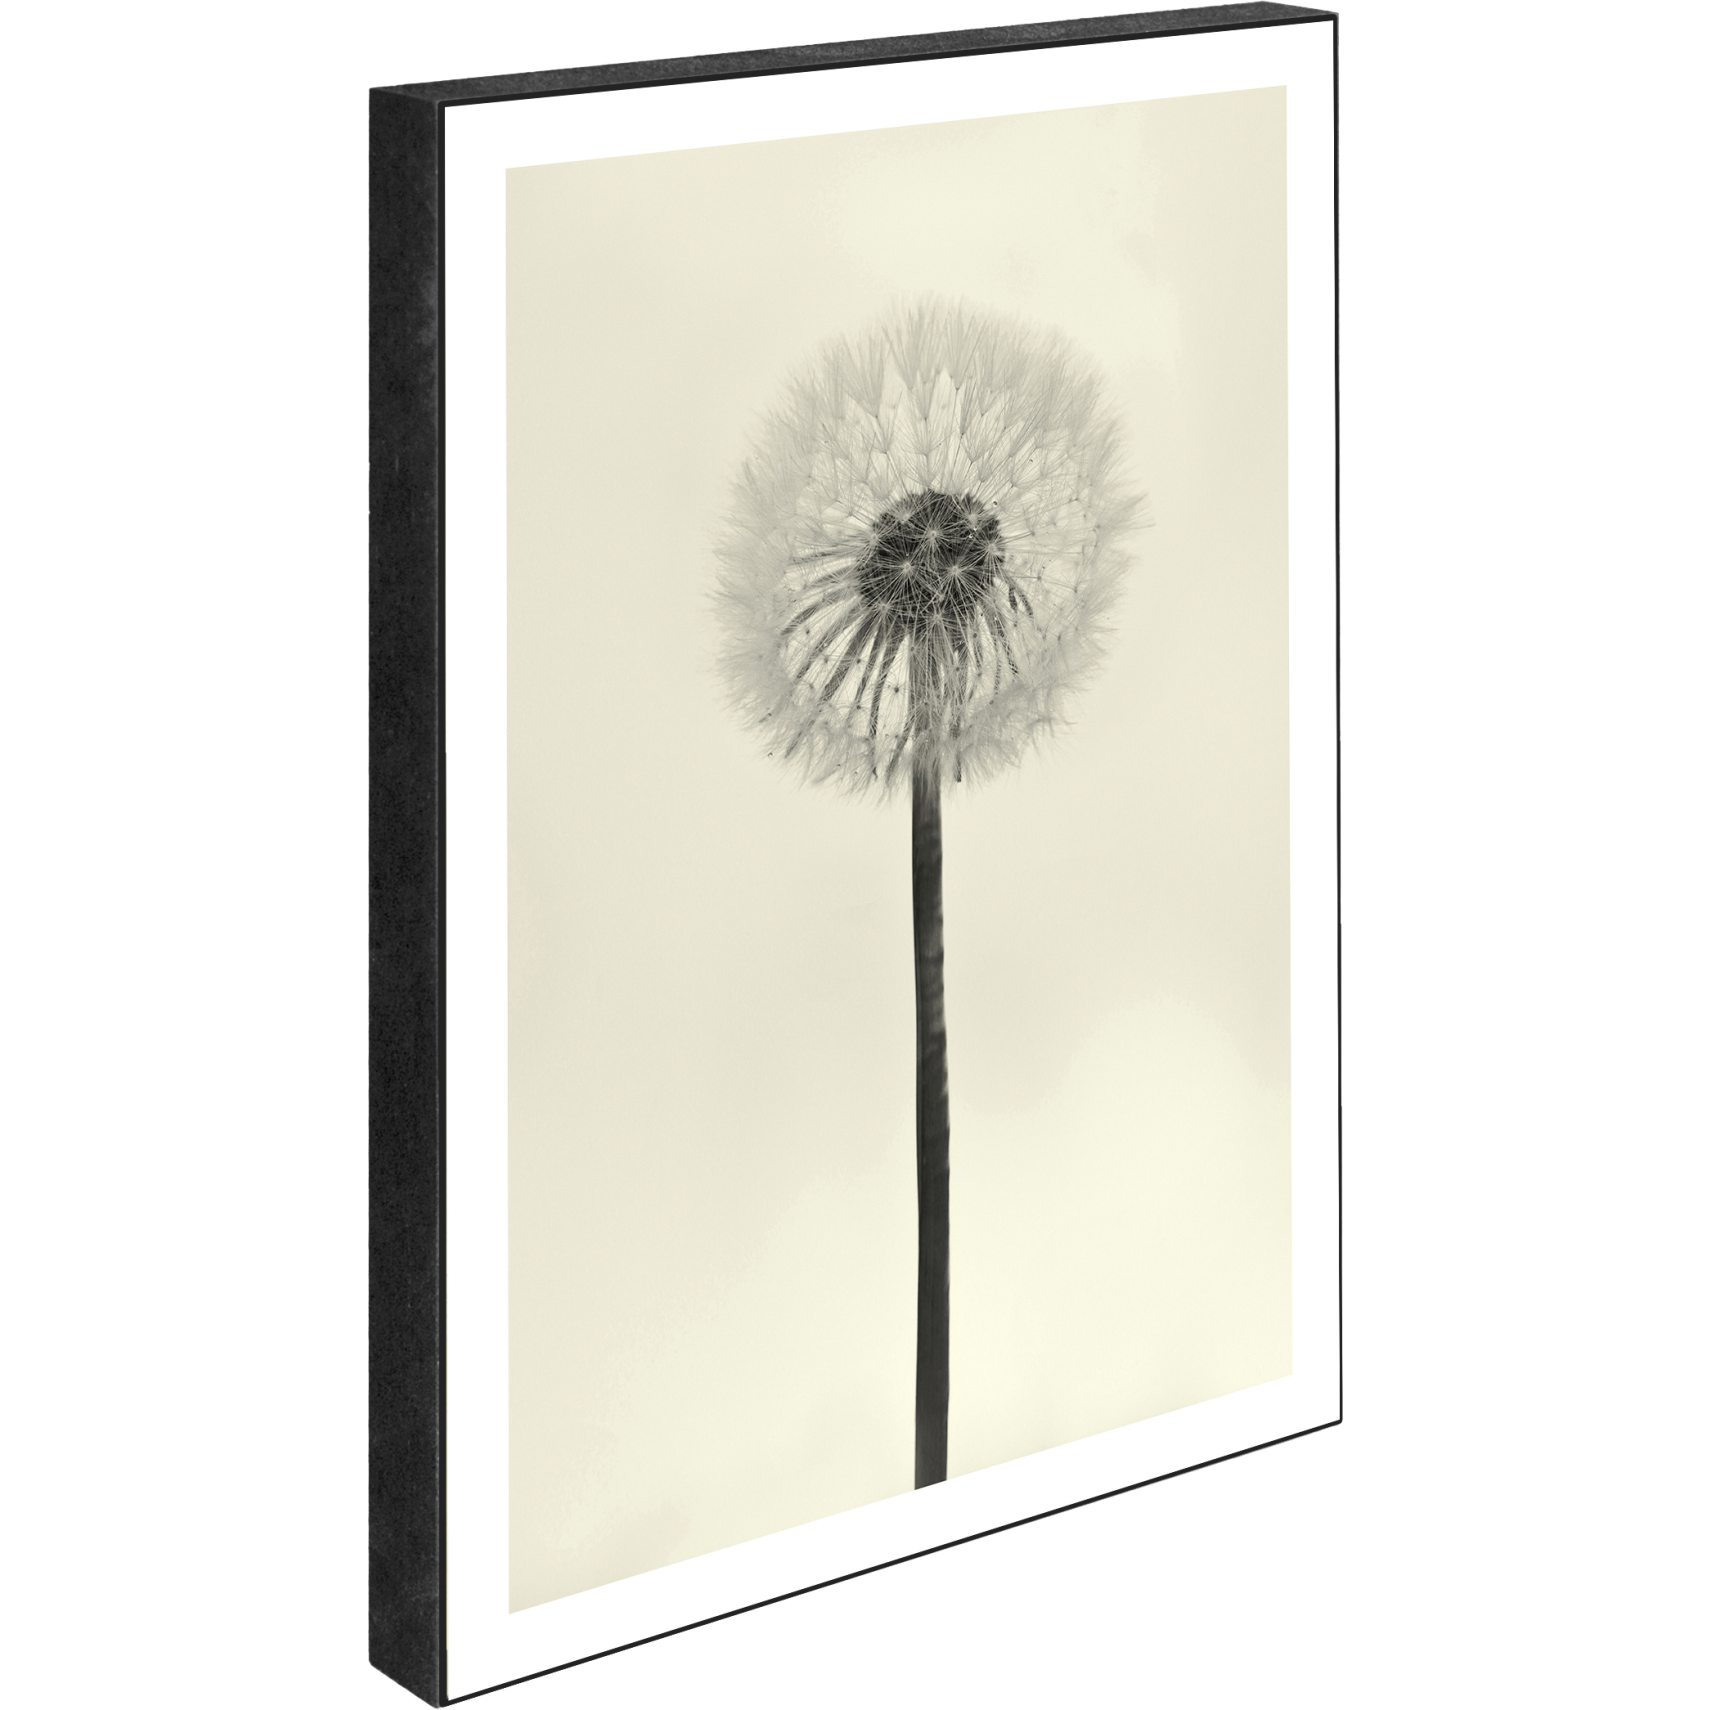 Blocks Skilt 15 x 21 x 2 cm - Dandelion - white